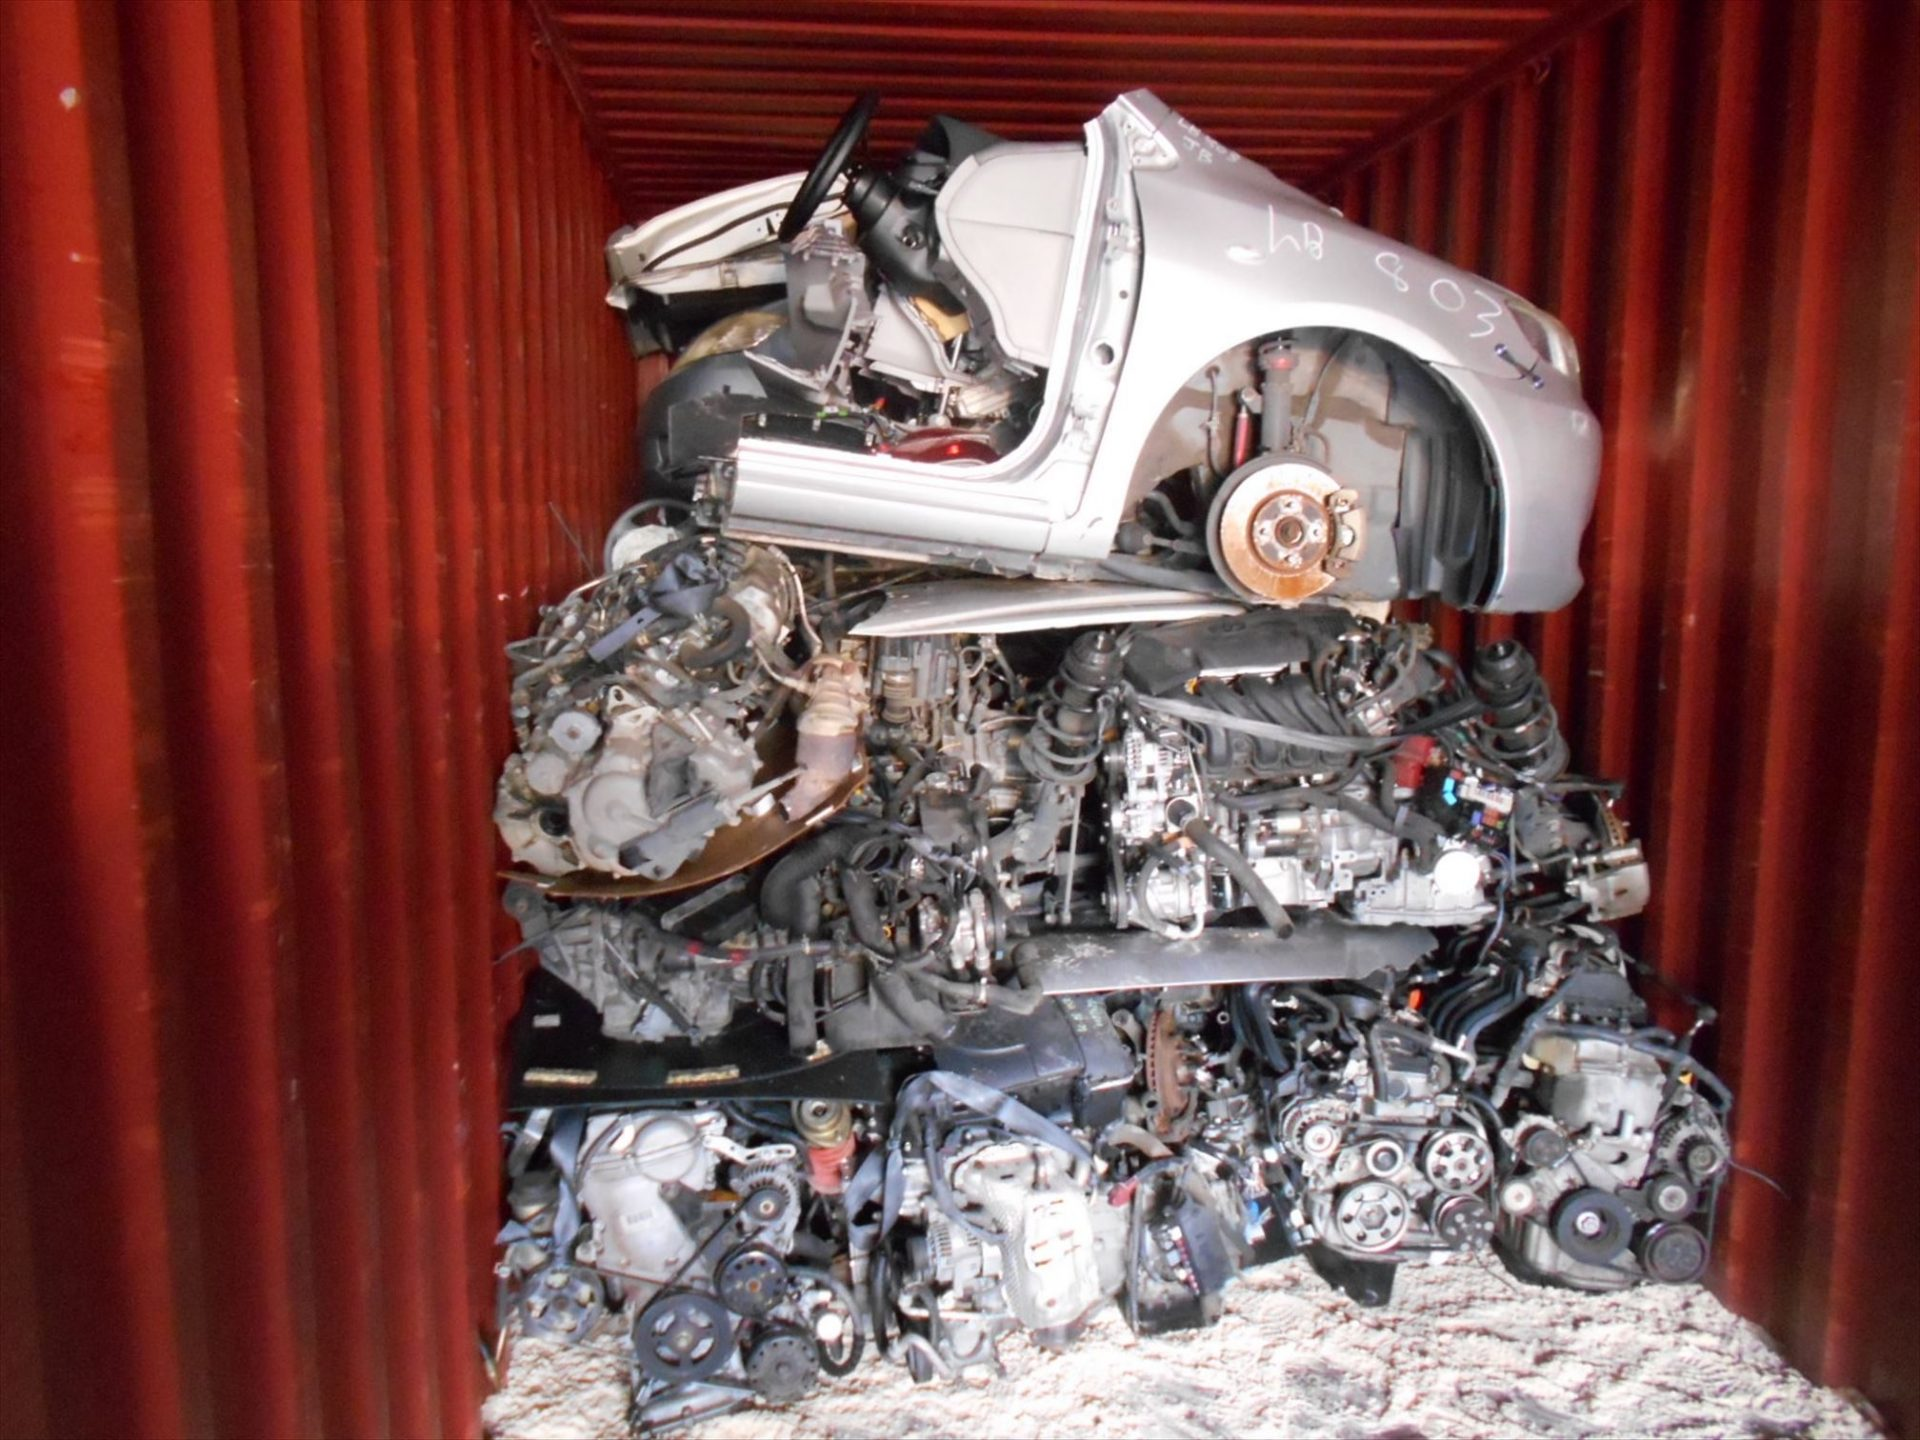 used parts japan,japan used car parts,used car parts,中古車部品輸出,中古自動車部品,used engine,japan used engine